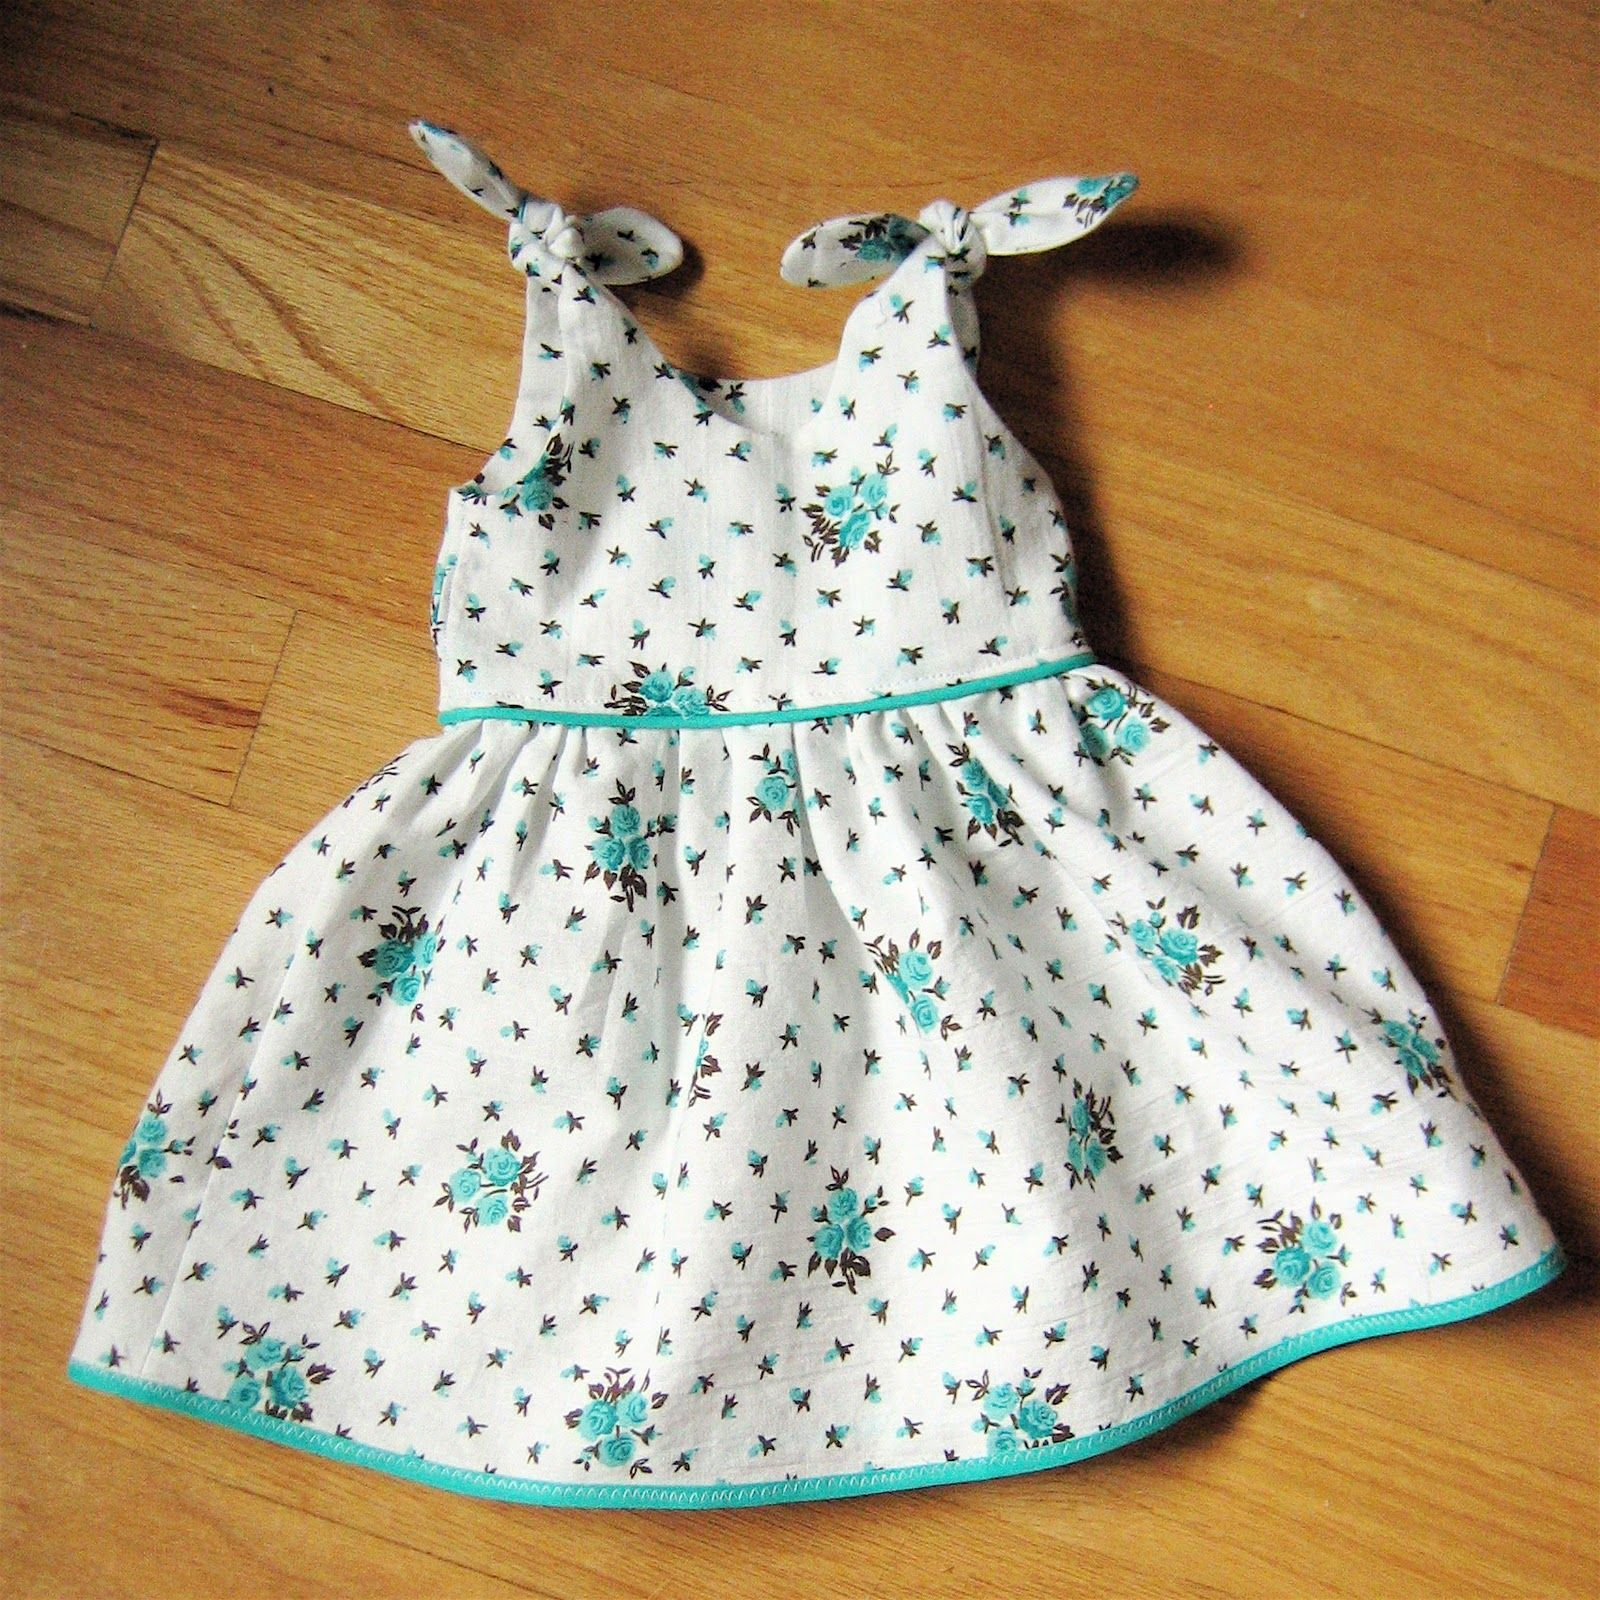 Perfect for 18baby dolls american girl doll clothes free itty bitty baby dress pattern for newborn girls jeuxipadfo Choice Image